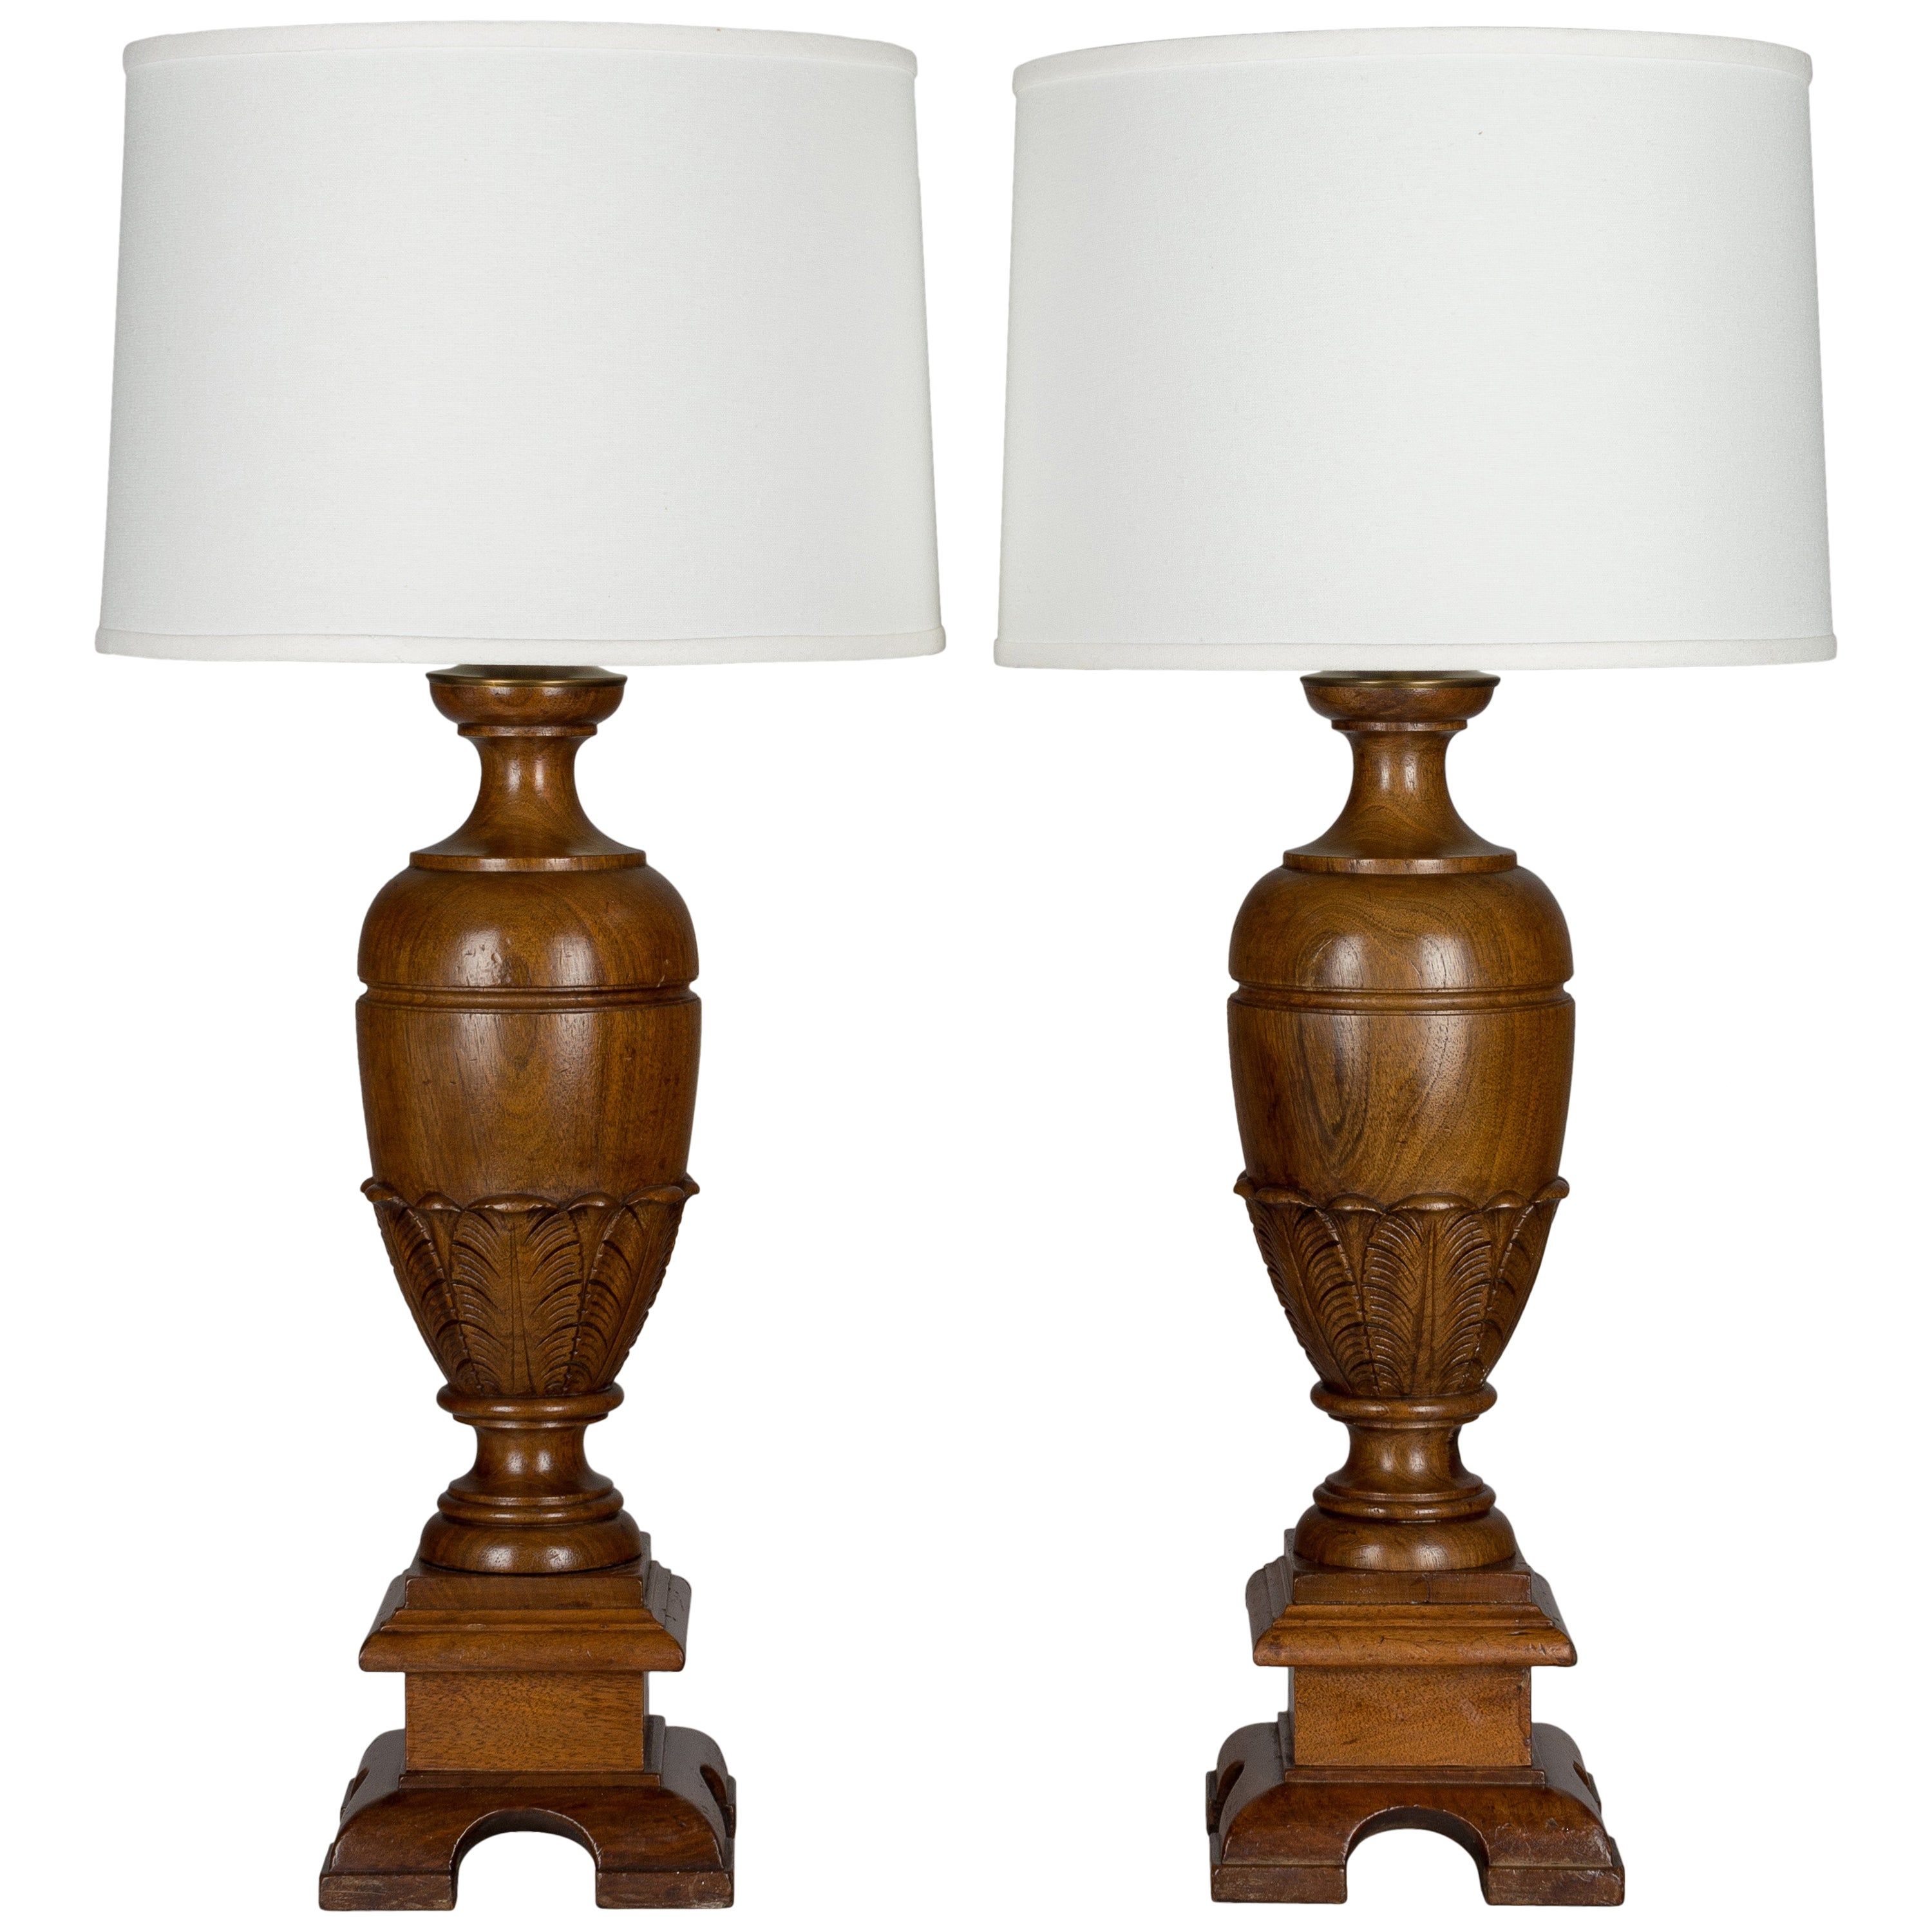 Pair of French Walnut Baluster Form Lamps